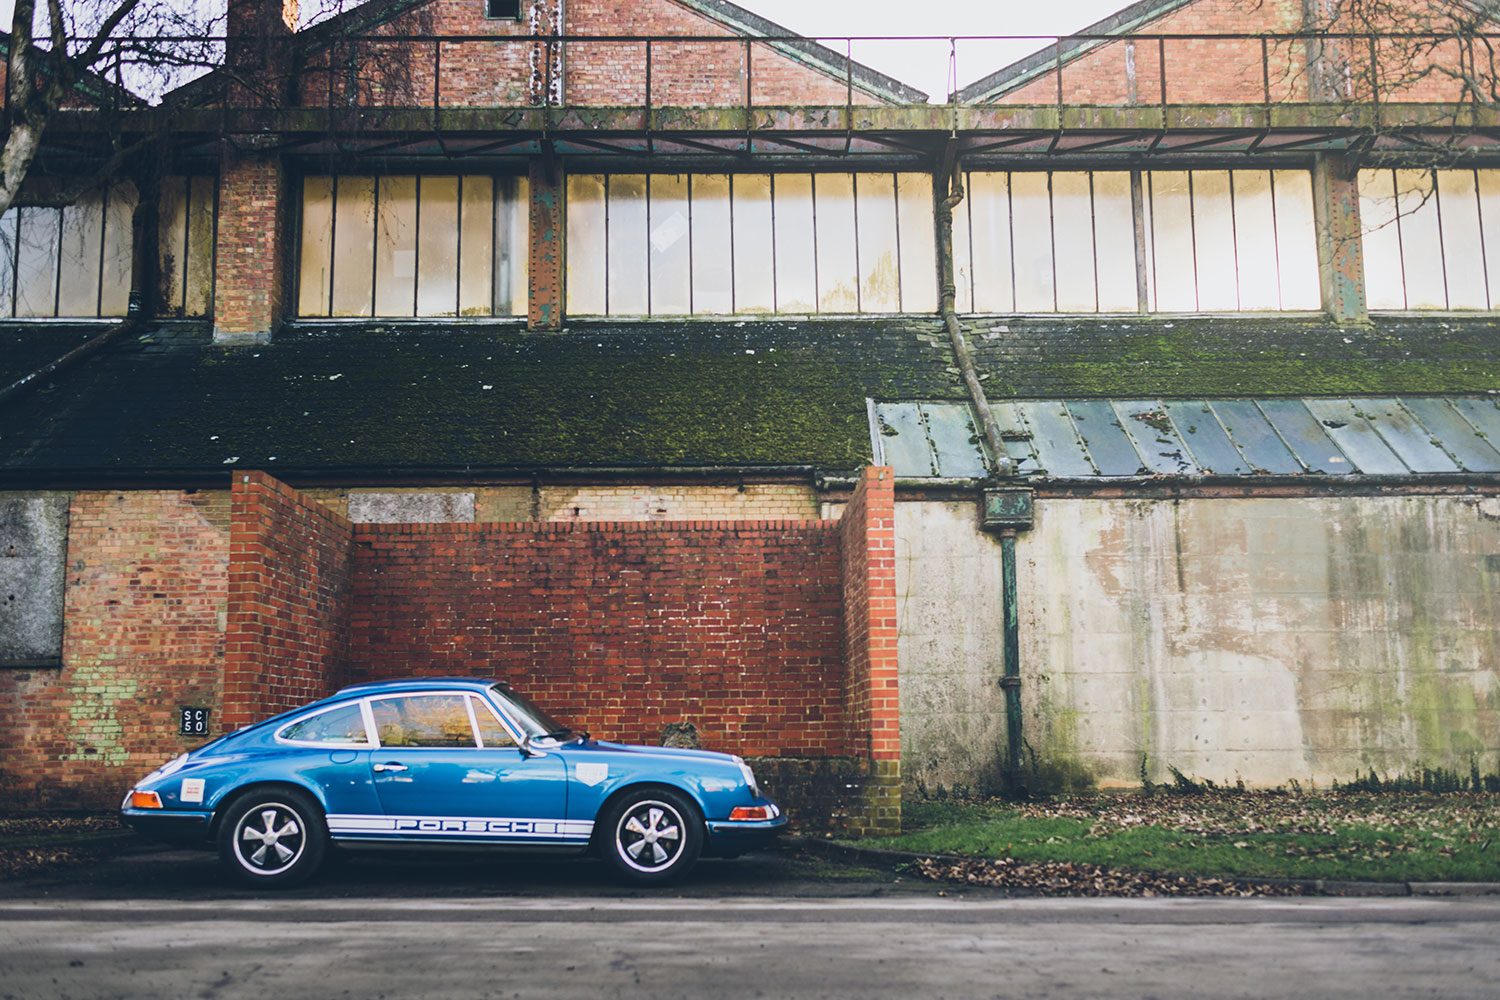 The Blue Pearl at Bicester Sunday Scramble - 1972 Porsche 911T